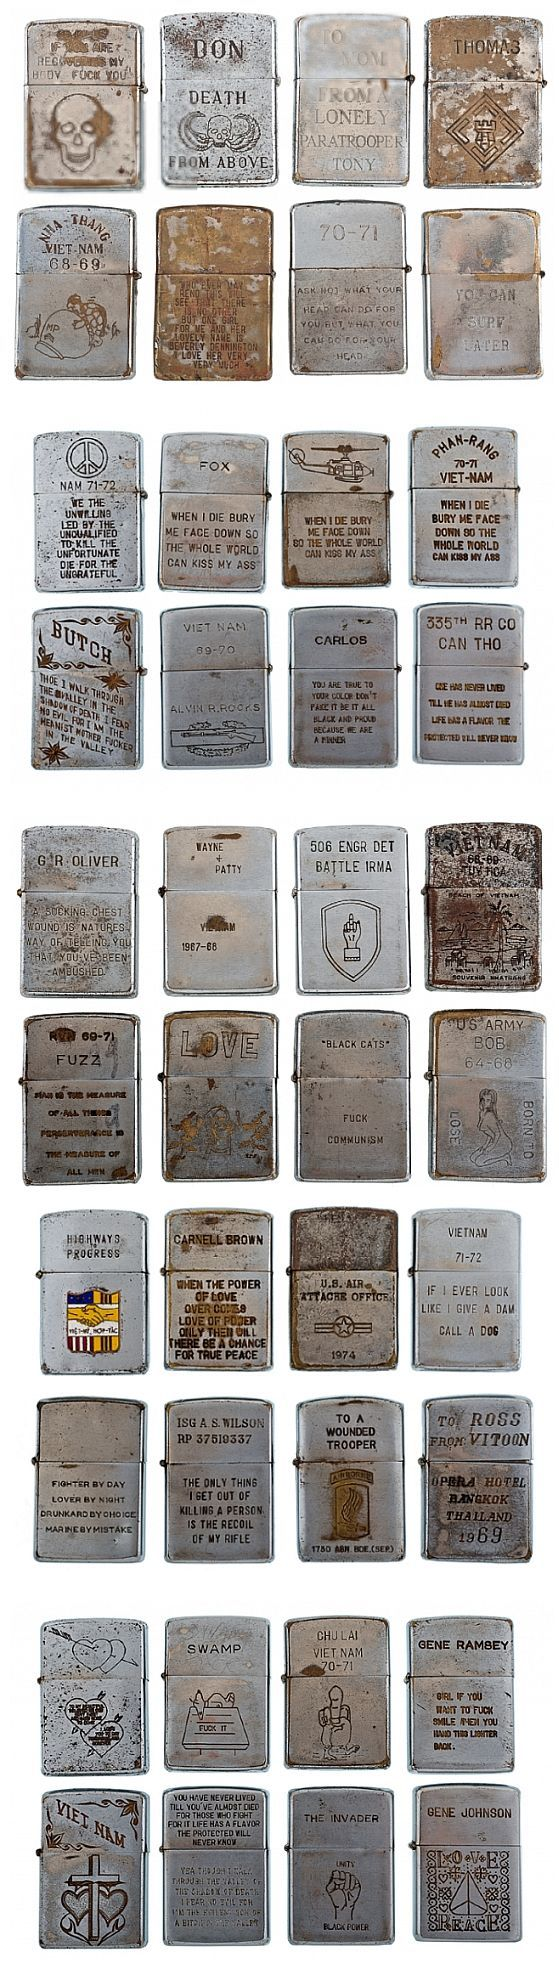 Vintage Vietnam Zippo Lighter Collection - sold at auction for more than 32K: